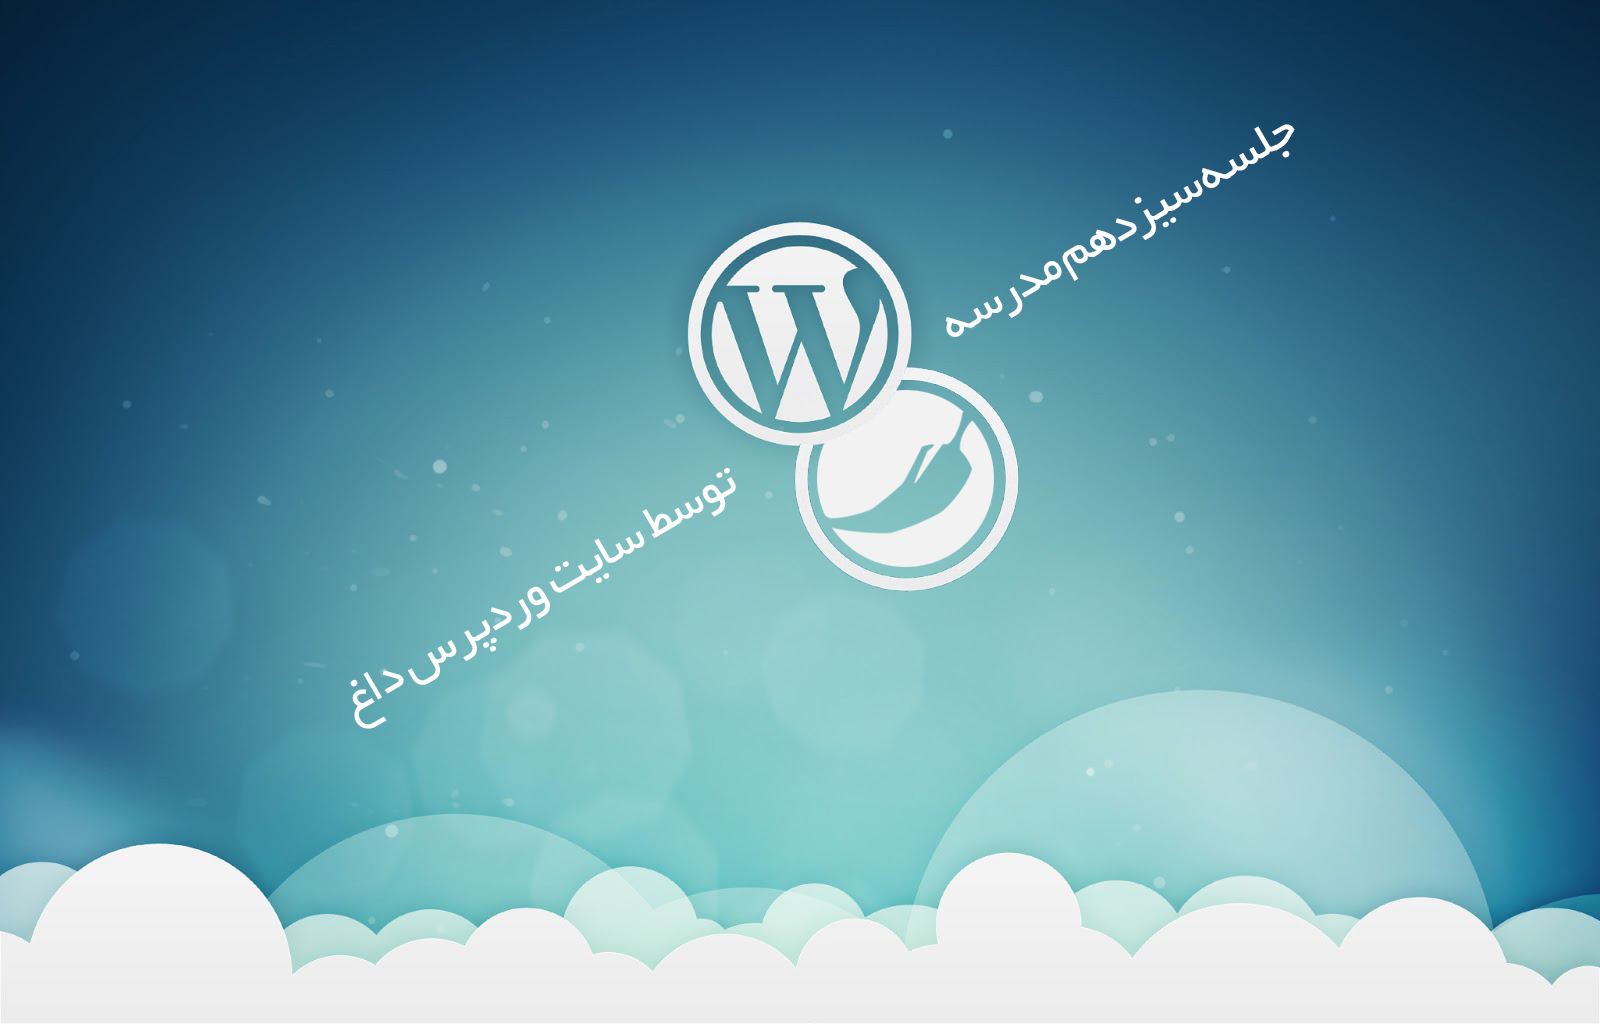 school-wordpress-redwp-13